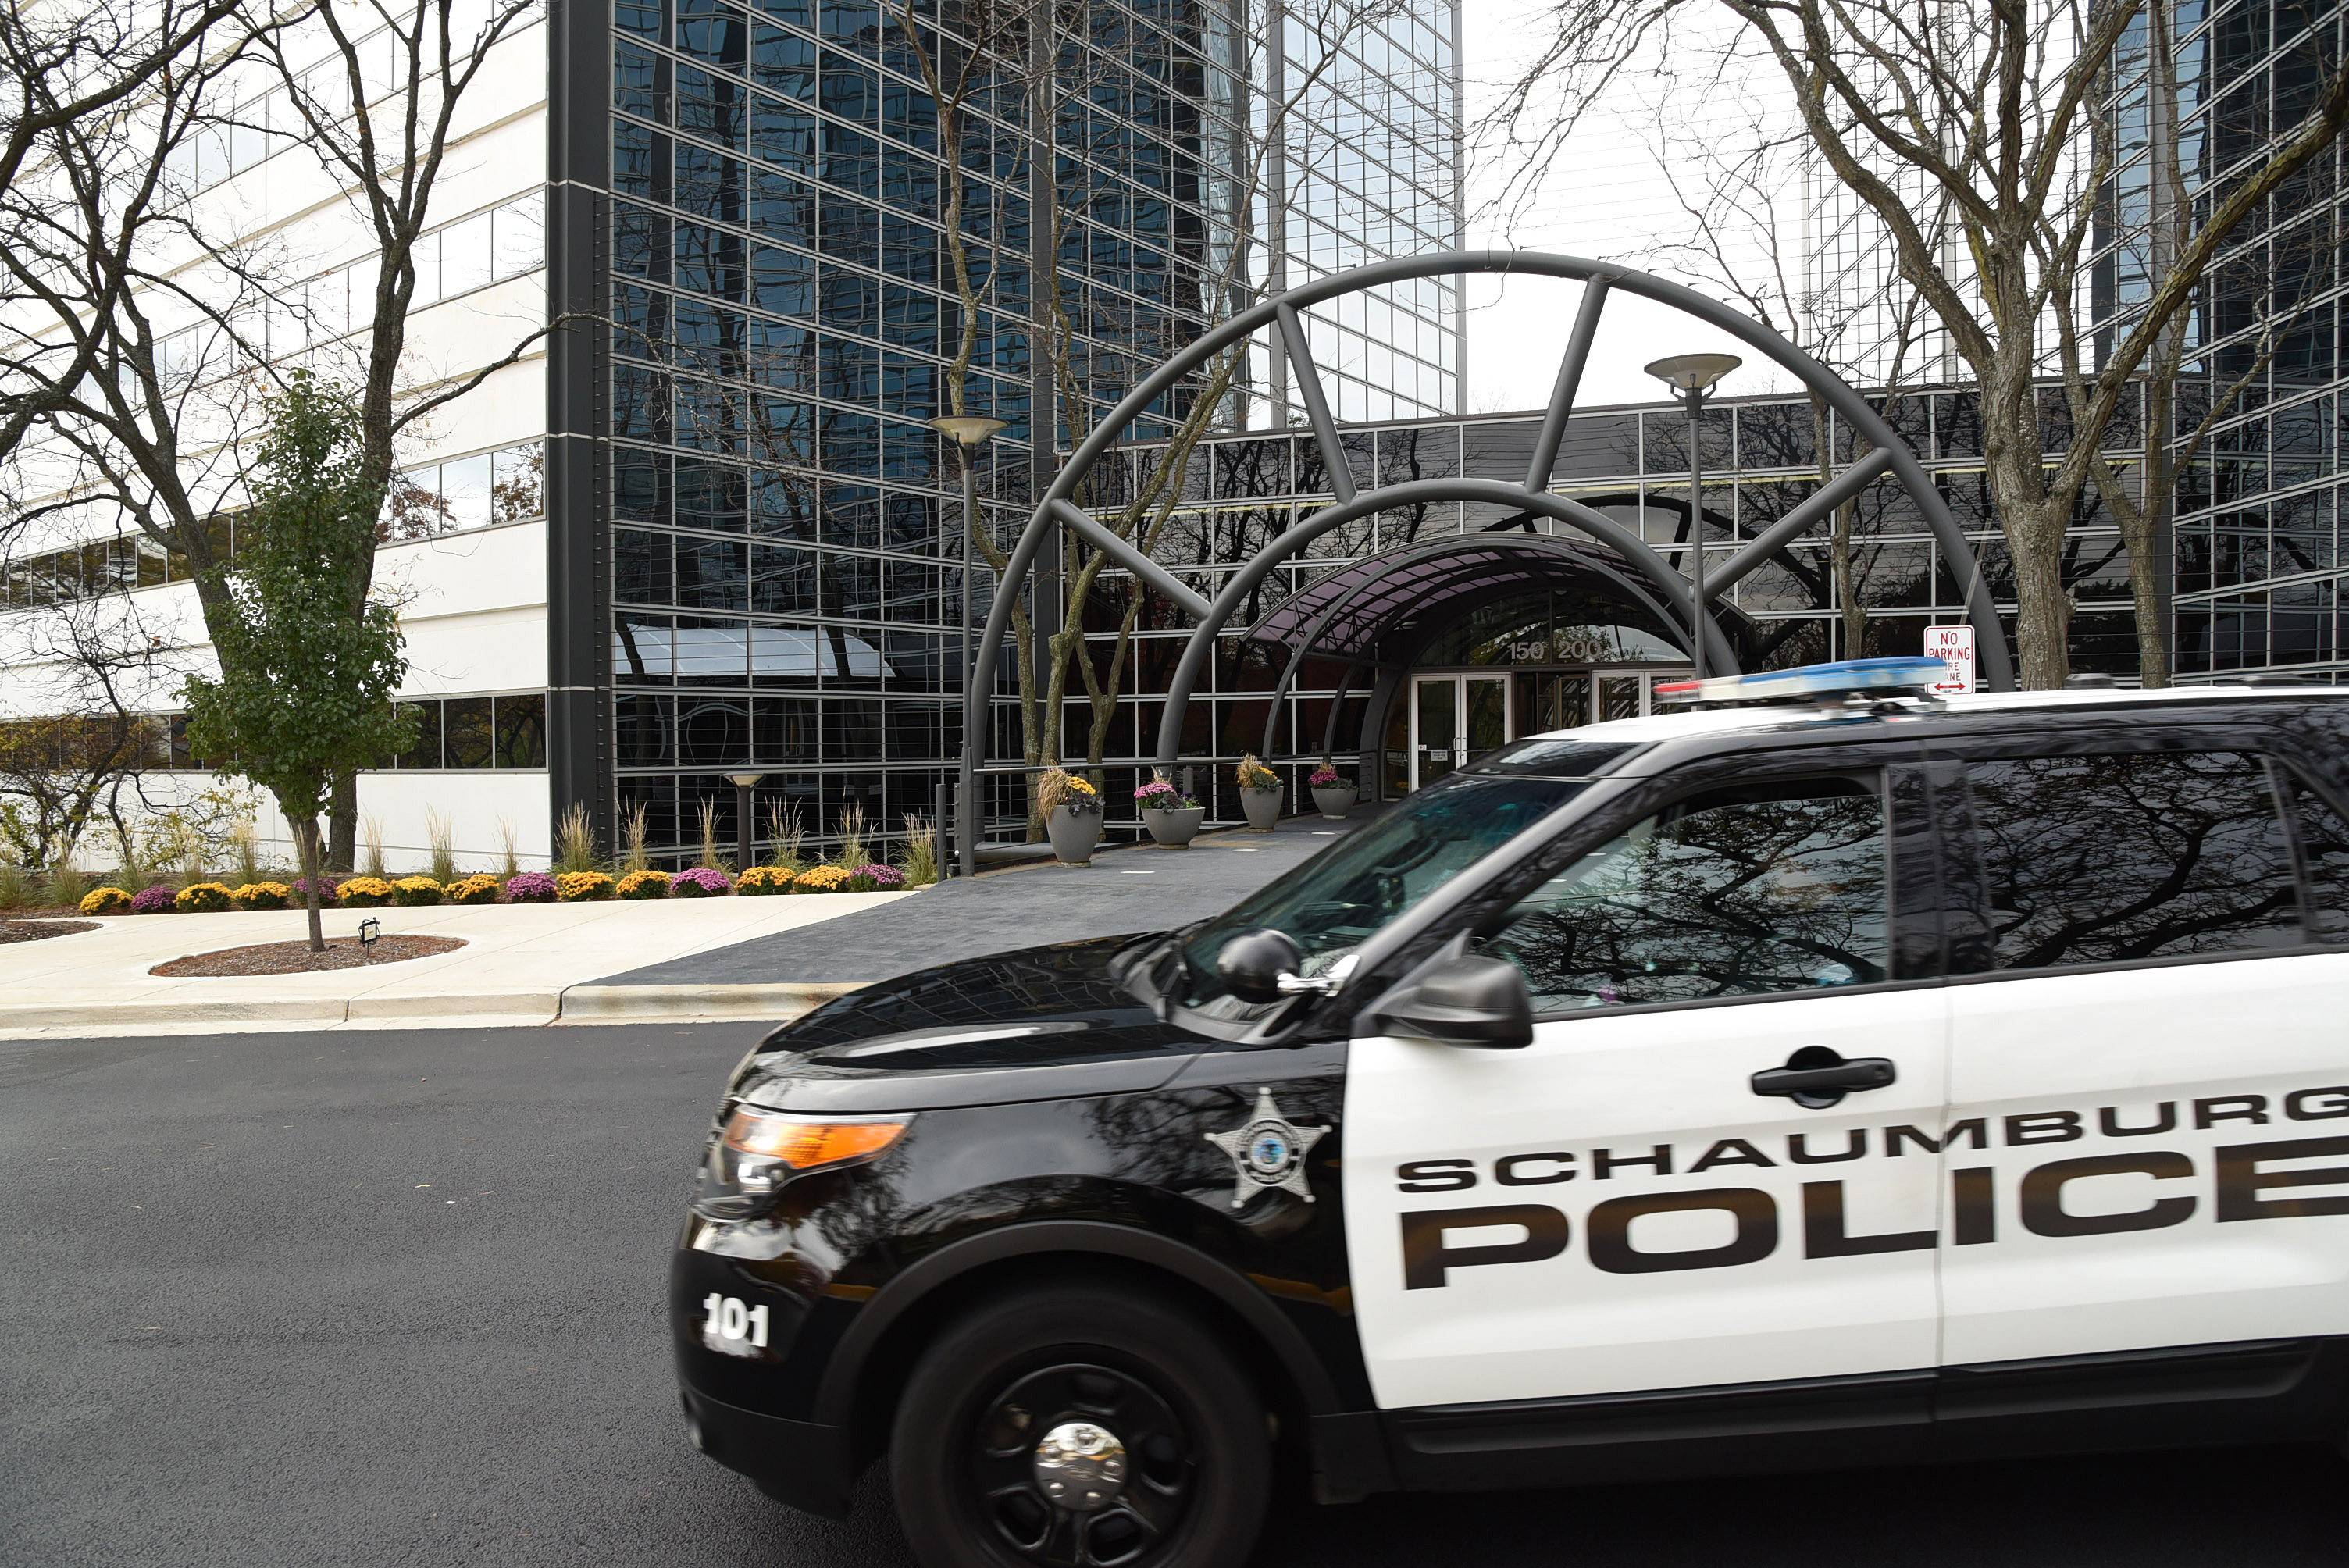 Schaumburg police responded to a report Tuesday morning of a suspicious man with a gun in an office complex at 150 N. Martingale Road. Investigators later determined that a technician's maintenance equipment was mistaken for a firearm.